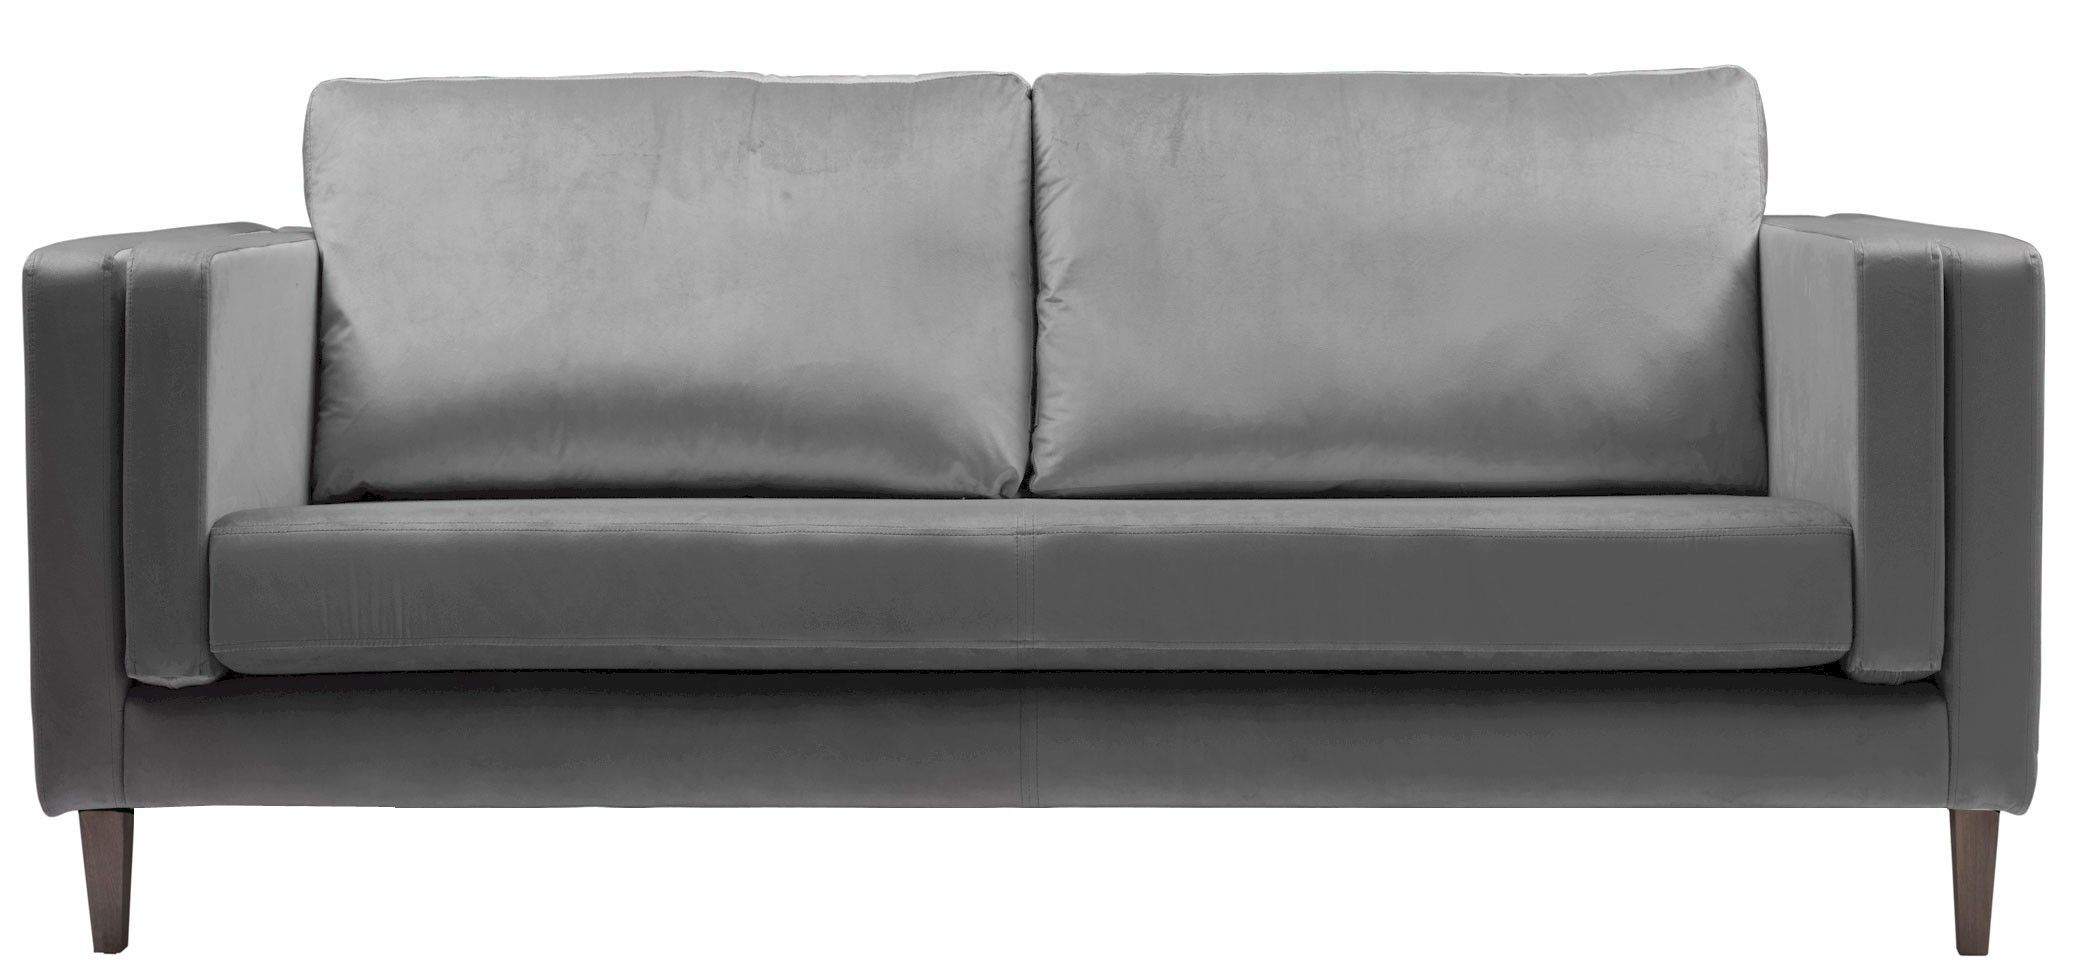 Sofa (View 17 of 20)